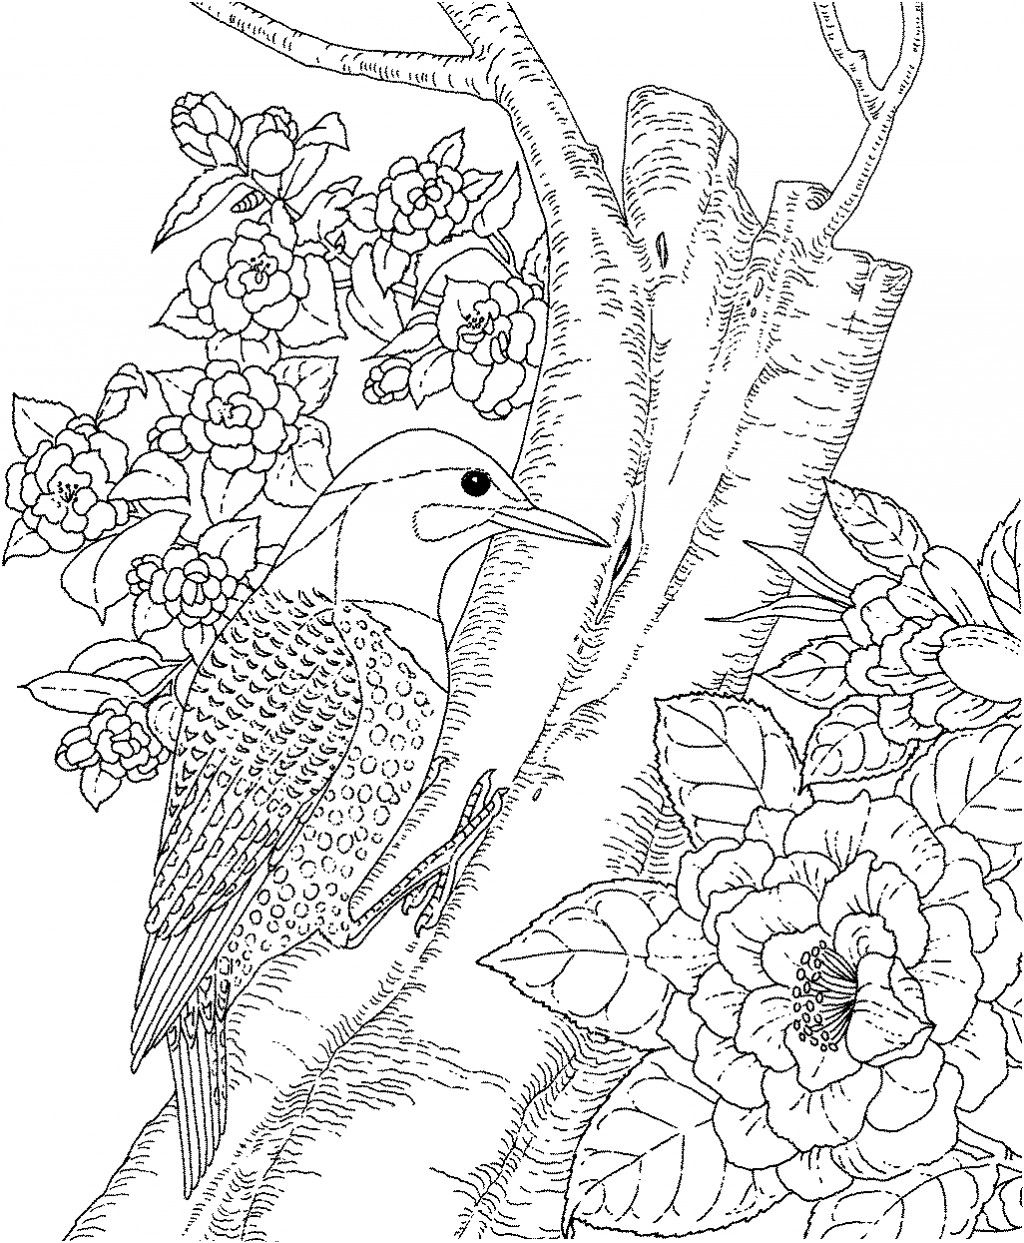 Backyard Animals And Nature Coloring Books Free Coloring Pages Animal Coloring Pages Bird Coloring Pages Coloring Pages Nature